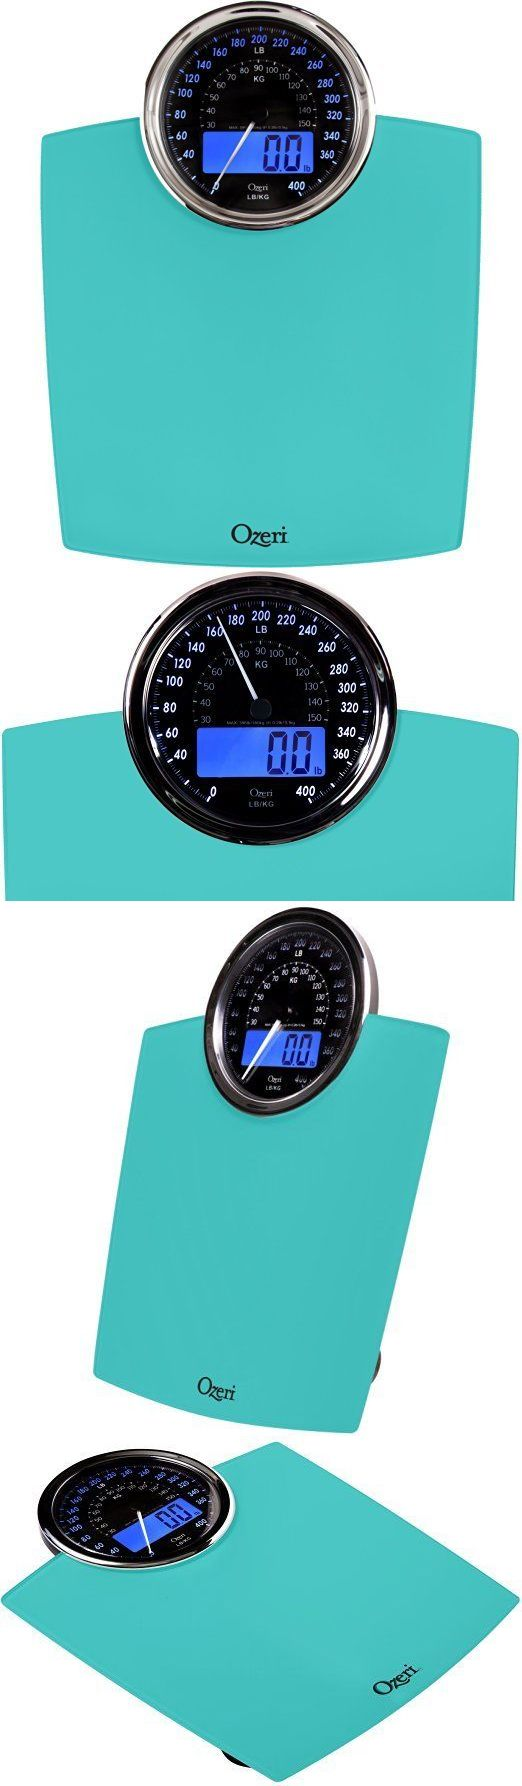 Scales: Digital Weight Scale Electronic Dial Lcd Bathroom Health Fitness Body Weigh 400 BUY IT NOW ONLY: $41.93